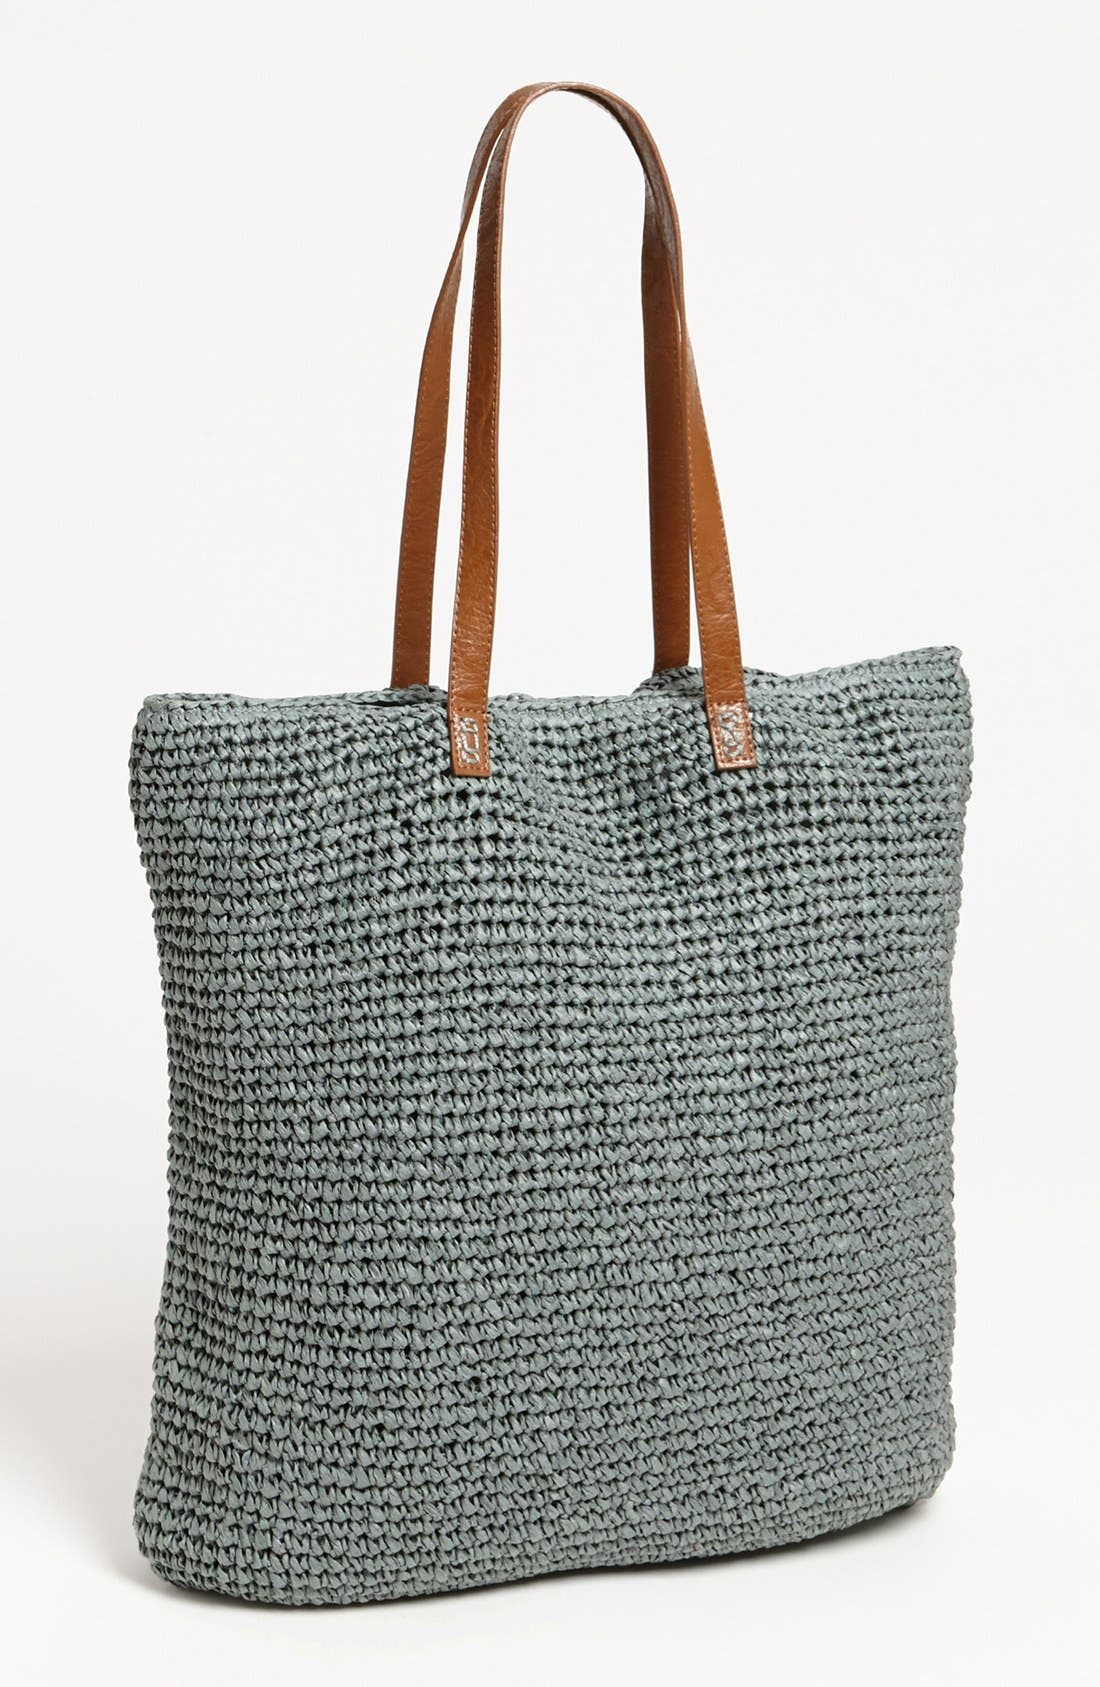 Alternate Image 1 Selected - Straw Studios Crochet Tote